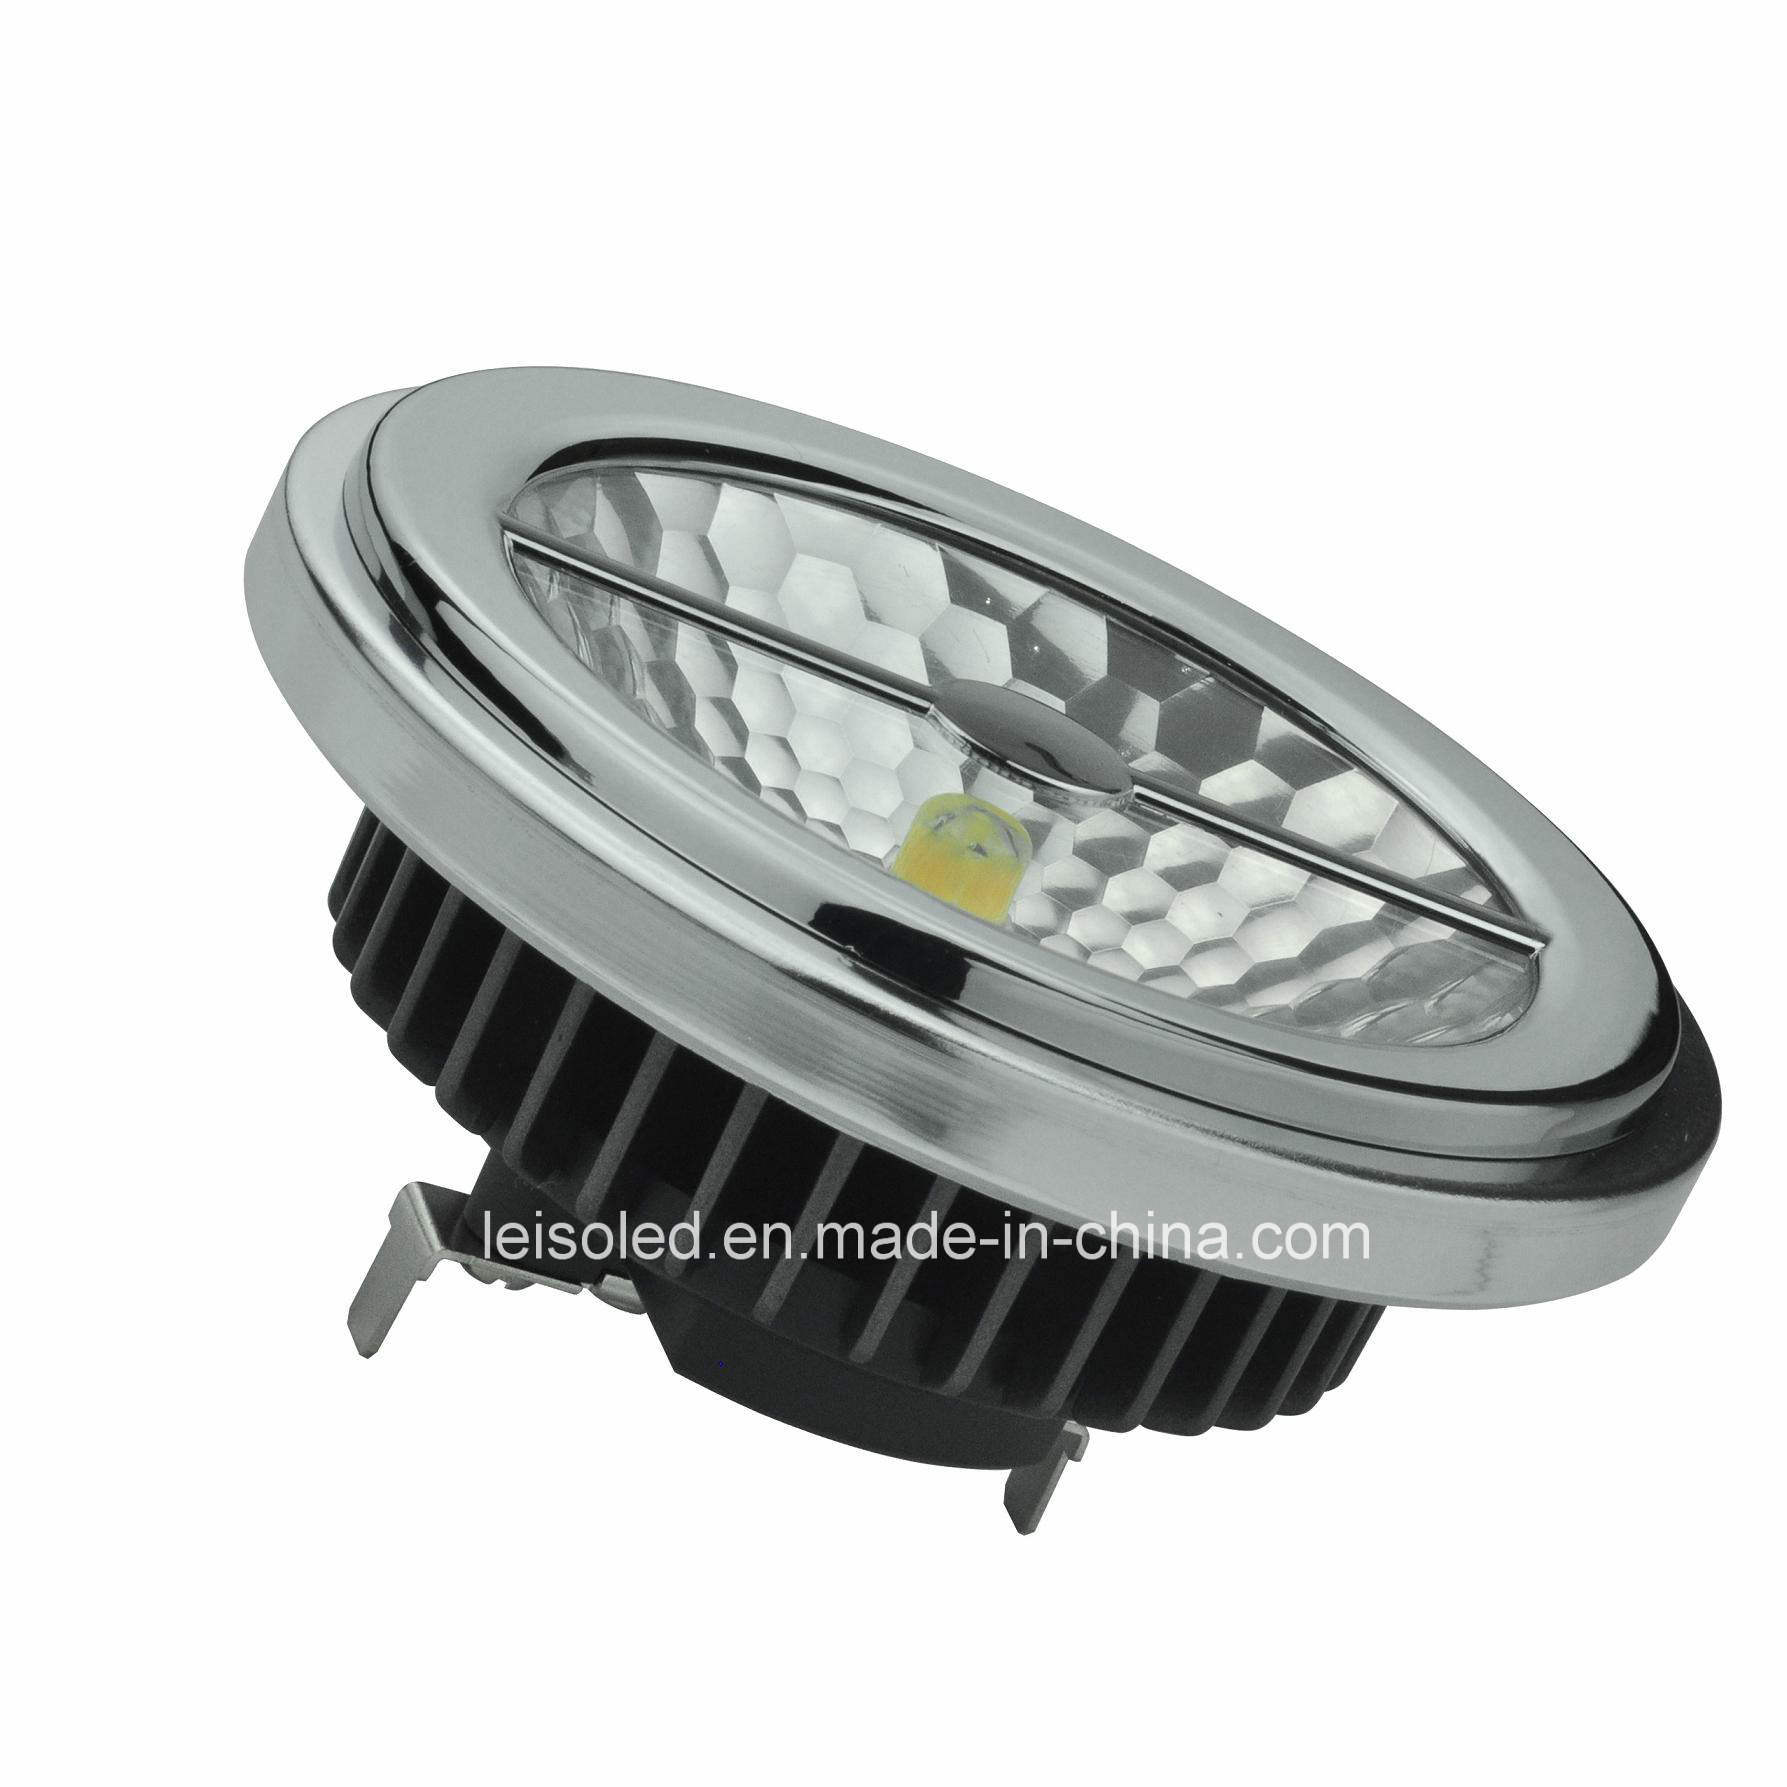 Led G53 Hot Item New Arrival 95ra 900lm 15w G53 Ar111 Led Light Source